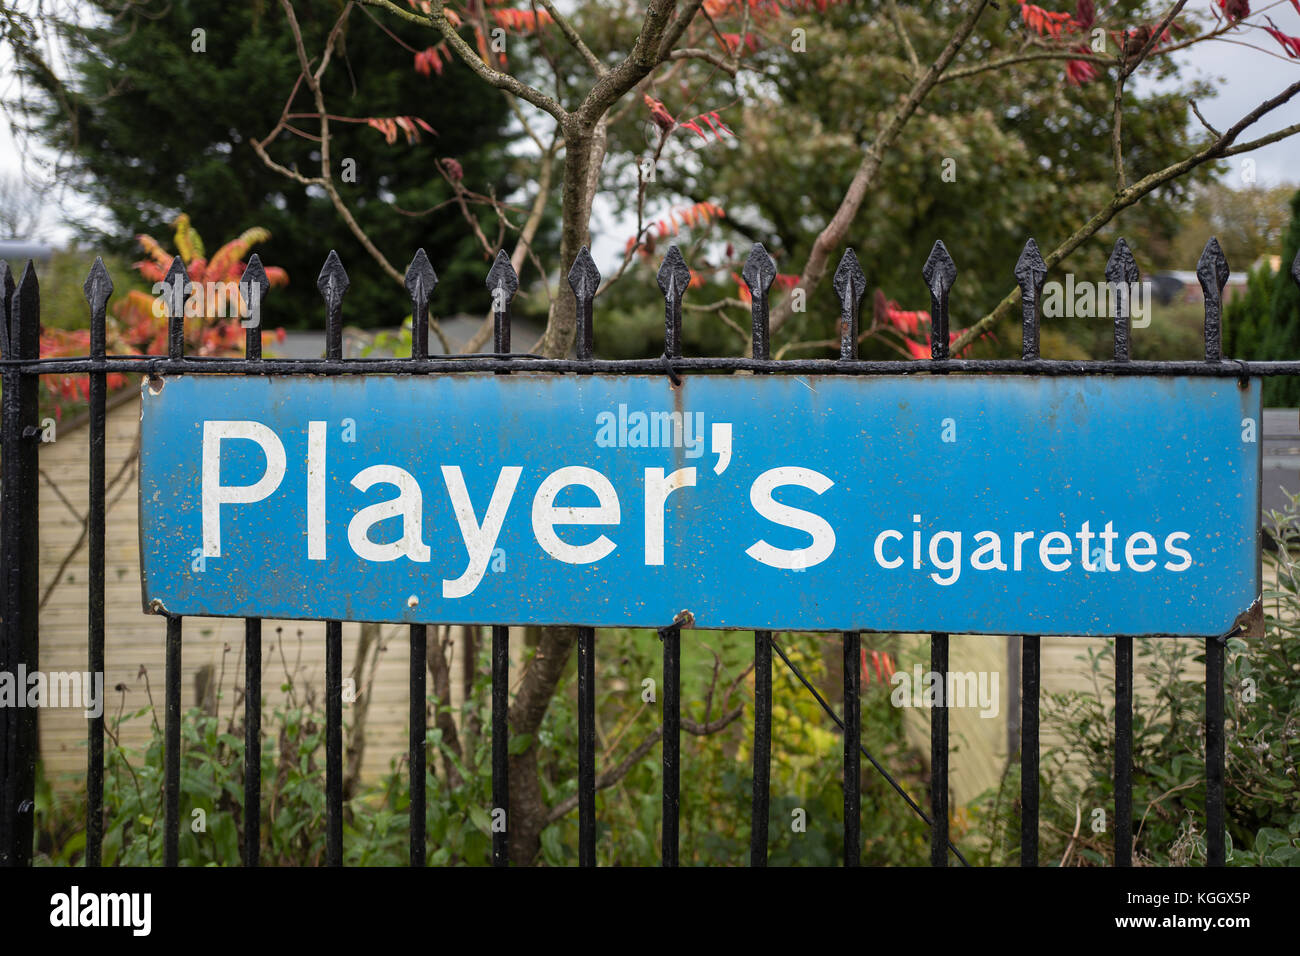 Old metallic advertisement for Player's cigarettes seen at a heritage steam railway station in Somerset UK - Stock Image